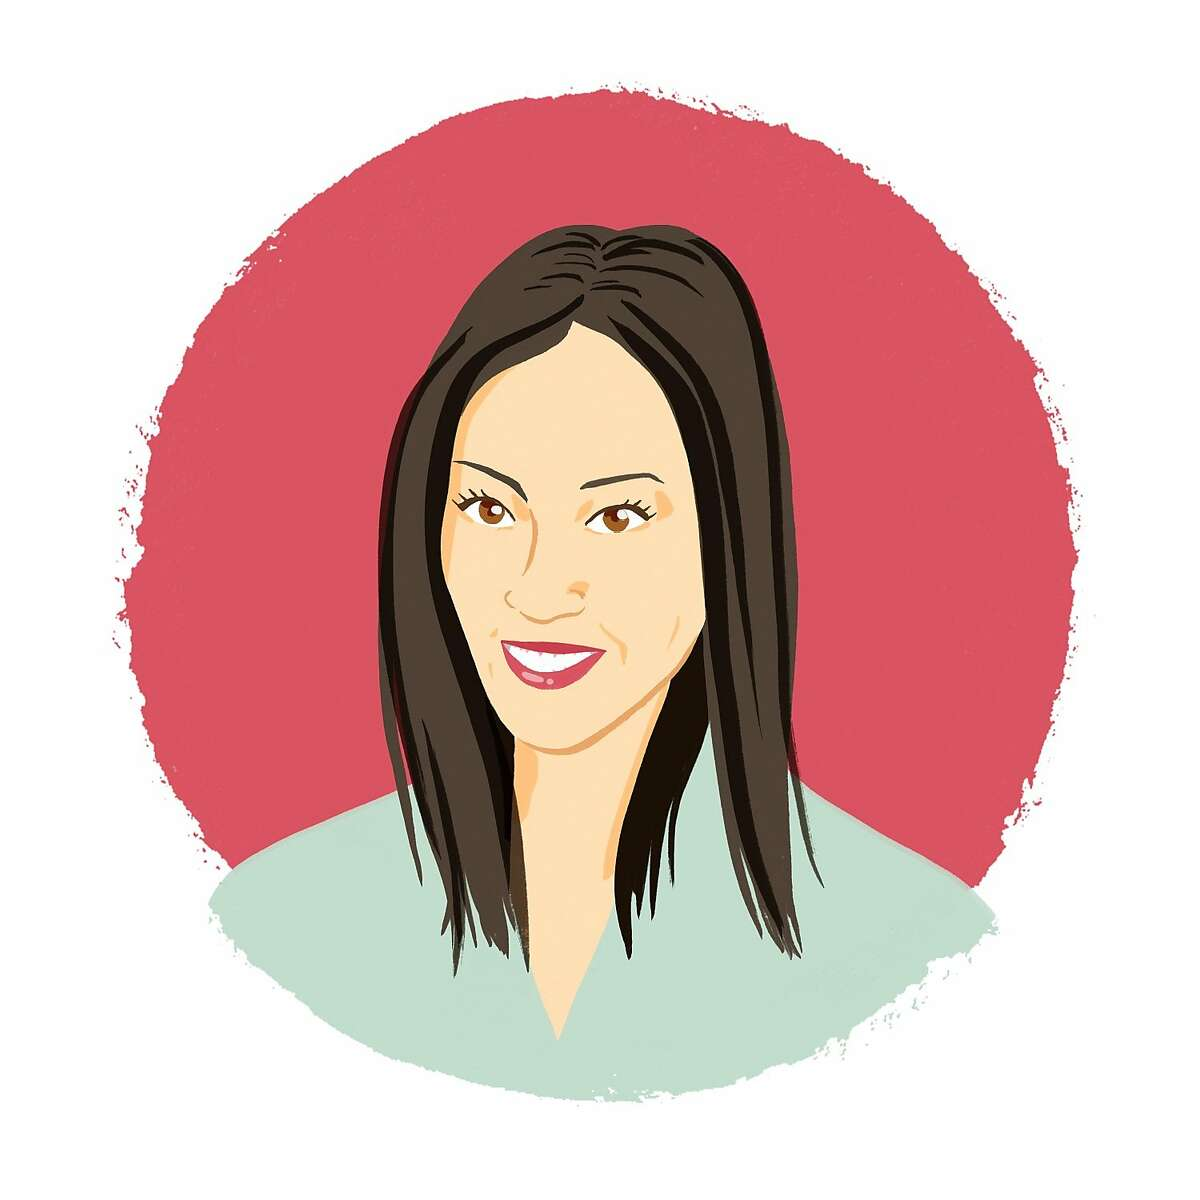 Outside of her day job as marketing director for Destination: Tiburon, Anh Sundstrom pens the personal work style blog, 9 to 5 Chic. Off the clock, she can be found window-shopping in Union Square and hanging out with her husband and young daughter.